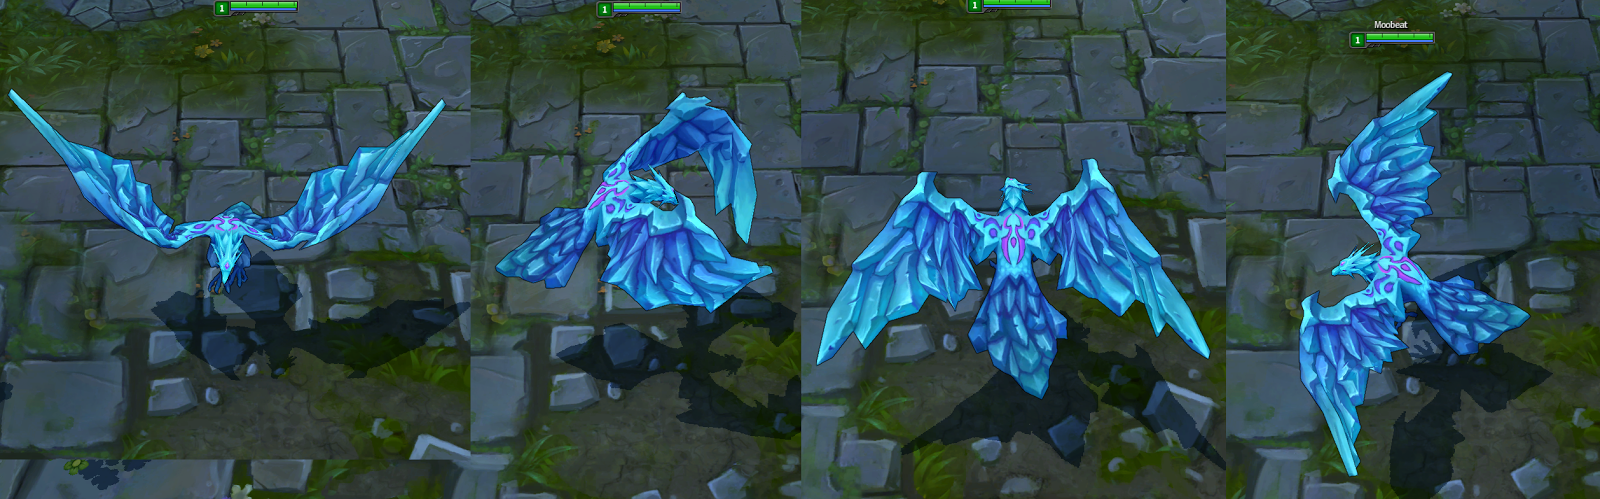 blackfrost anivia ingame - photo #14